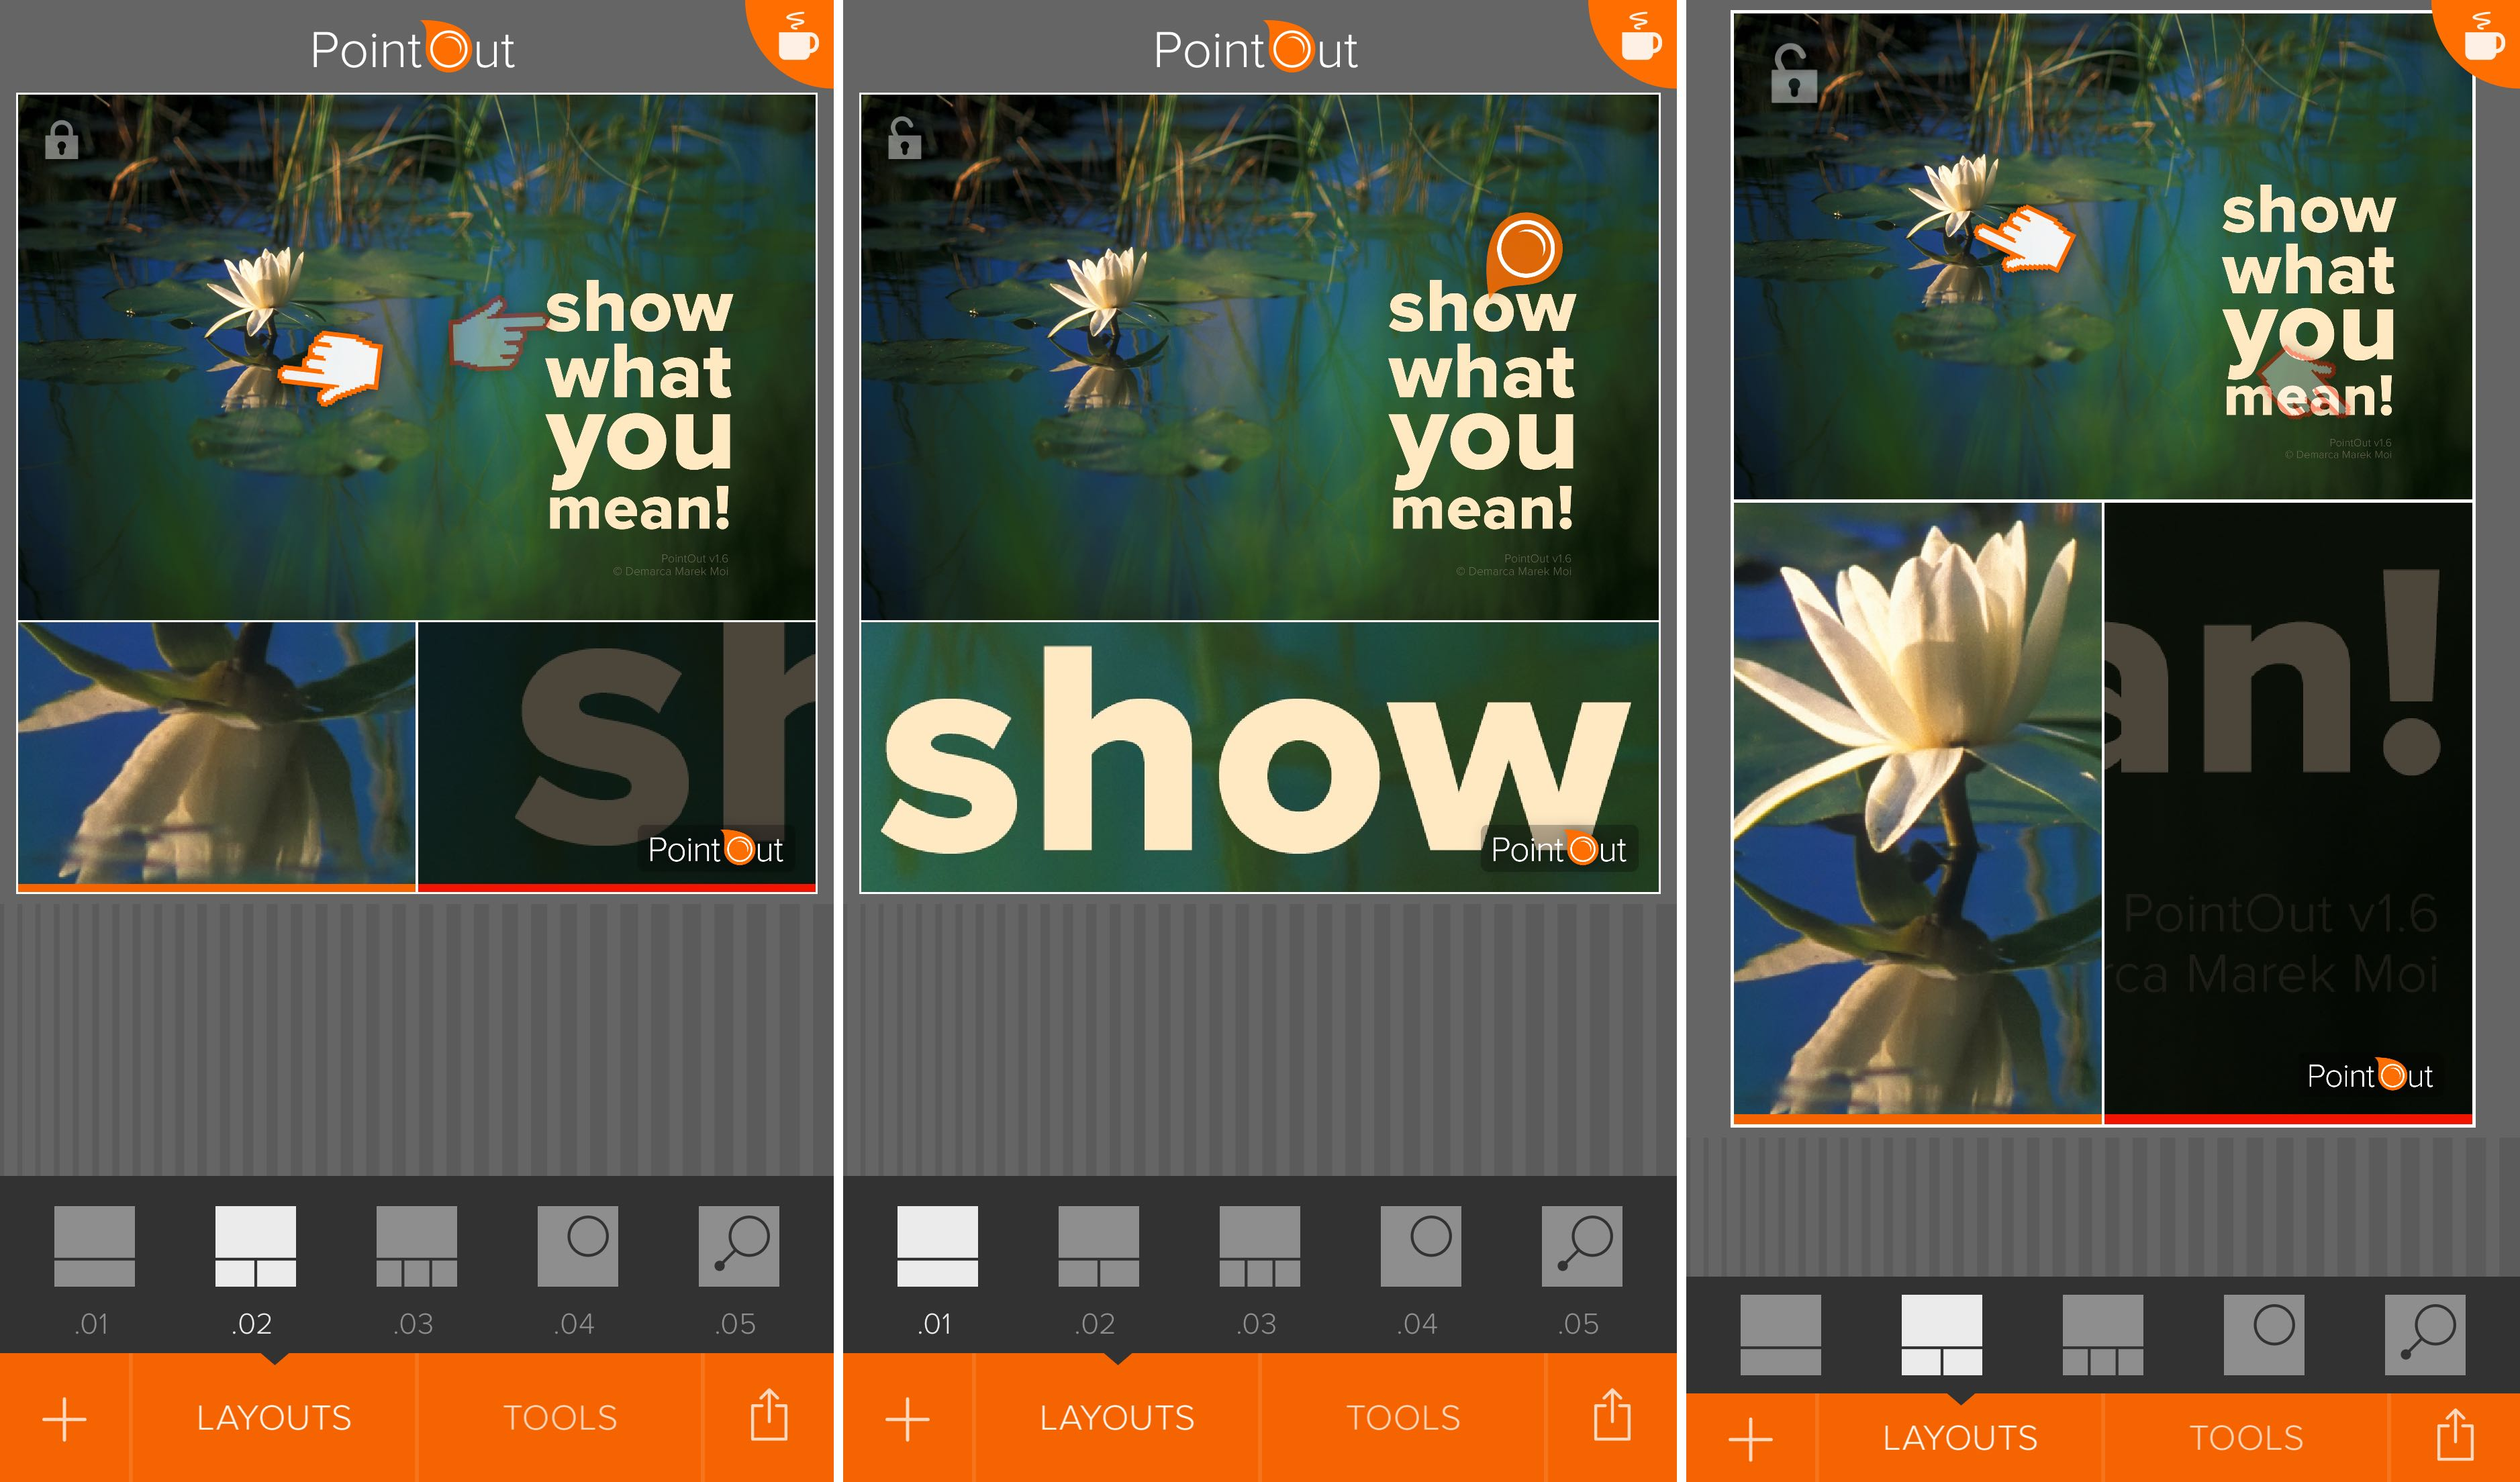 PointOut 1.6 for iOS layouts iPhone screenshot 001